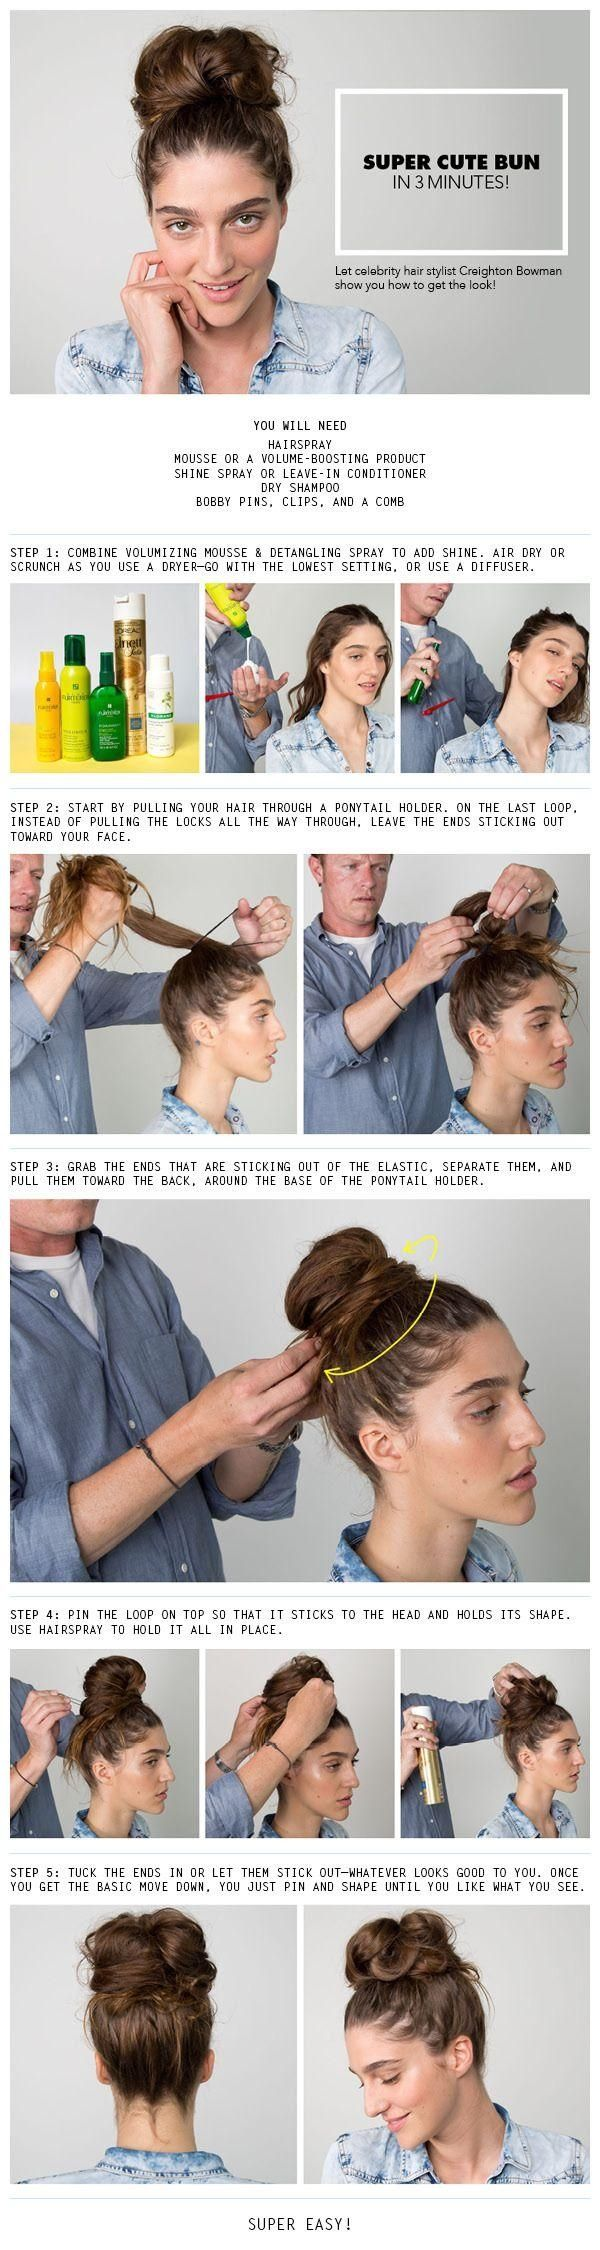 Diy super cute bun pictures photos and images for facebook tumblr